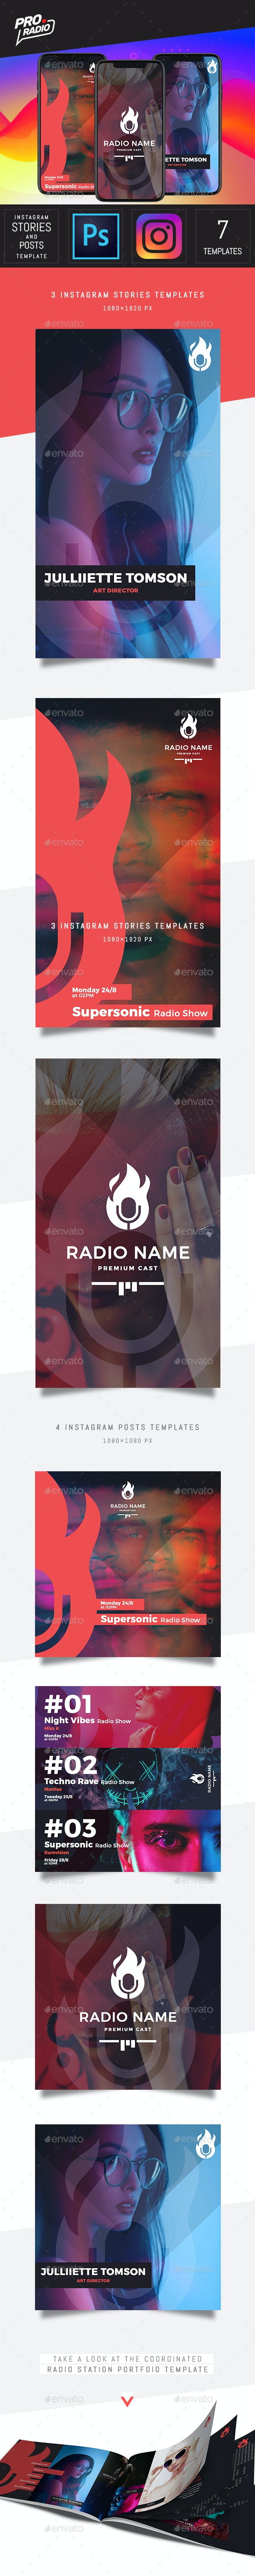 Radio Station Instagram Post and Stories Template - PSD - Social Media Web Elements